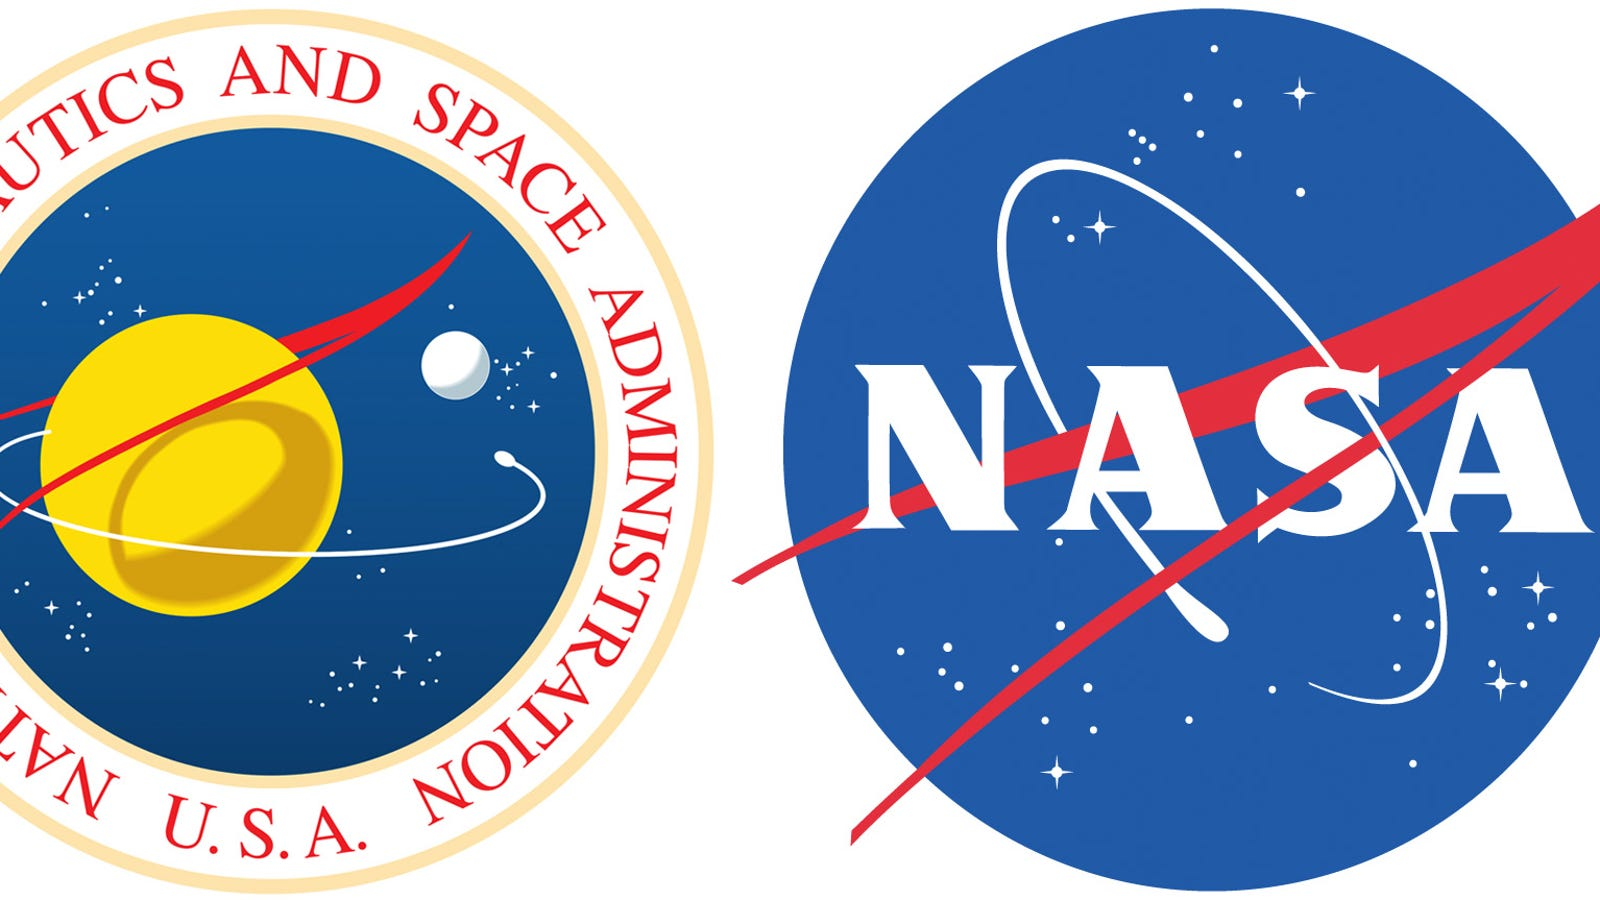 Whats The Red Shape In Nasas Meatball Logo